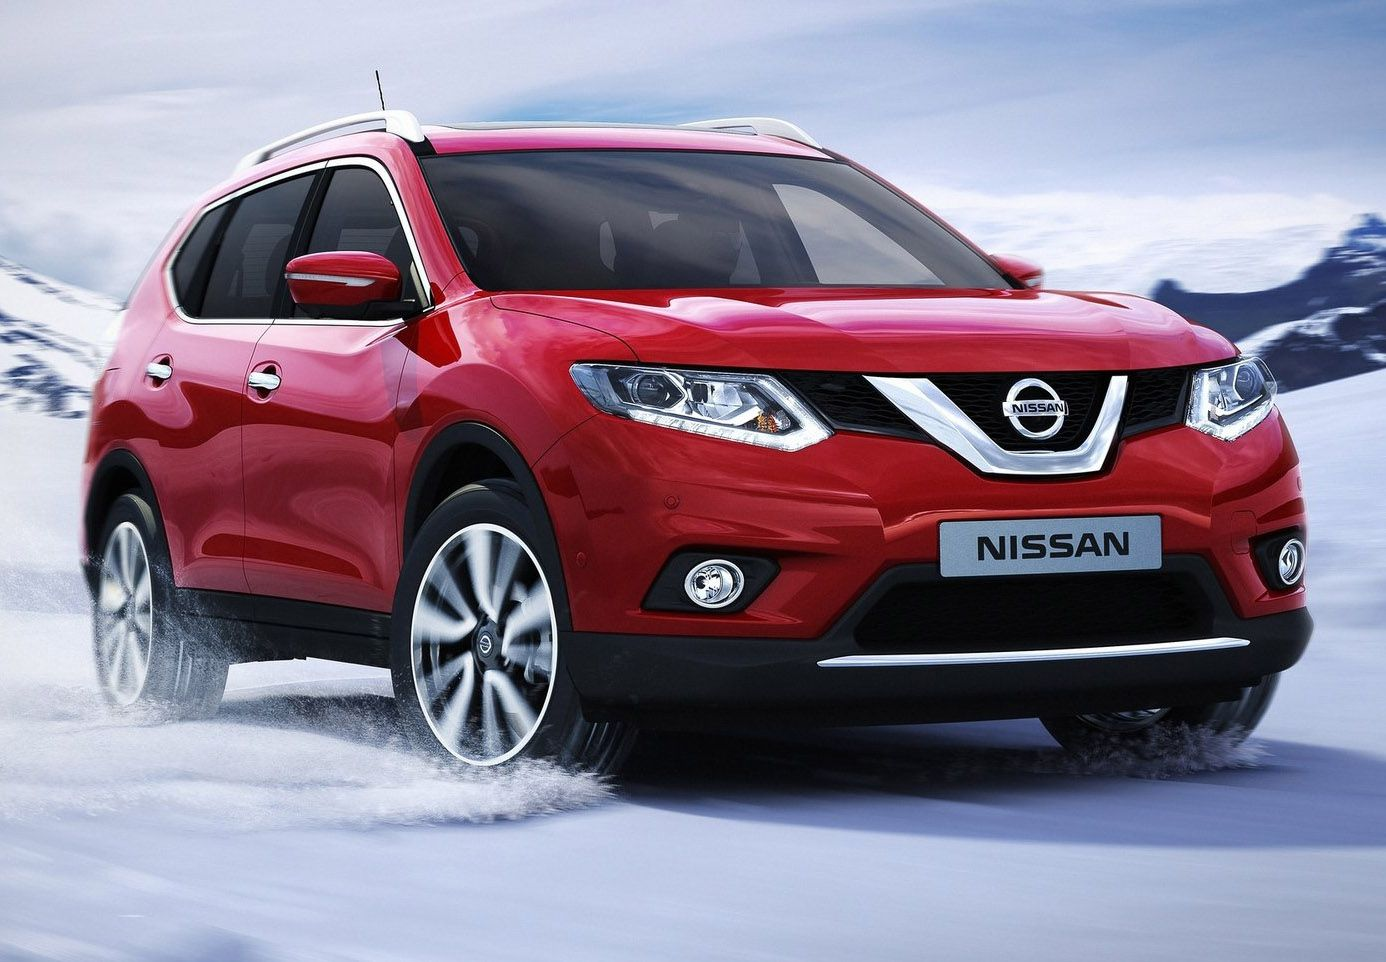 2017 Nissan X-Trail - Review, Release Date, Price - http://www.autos ...